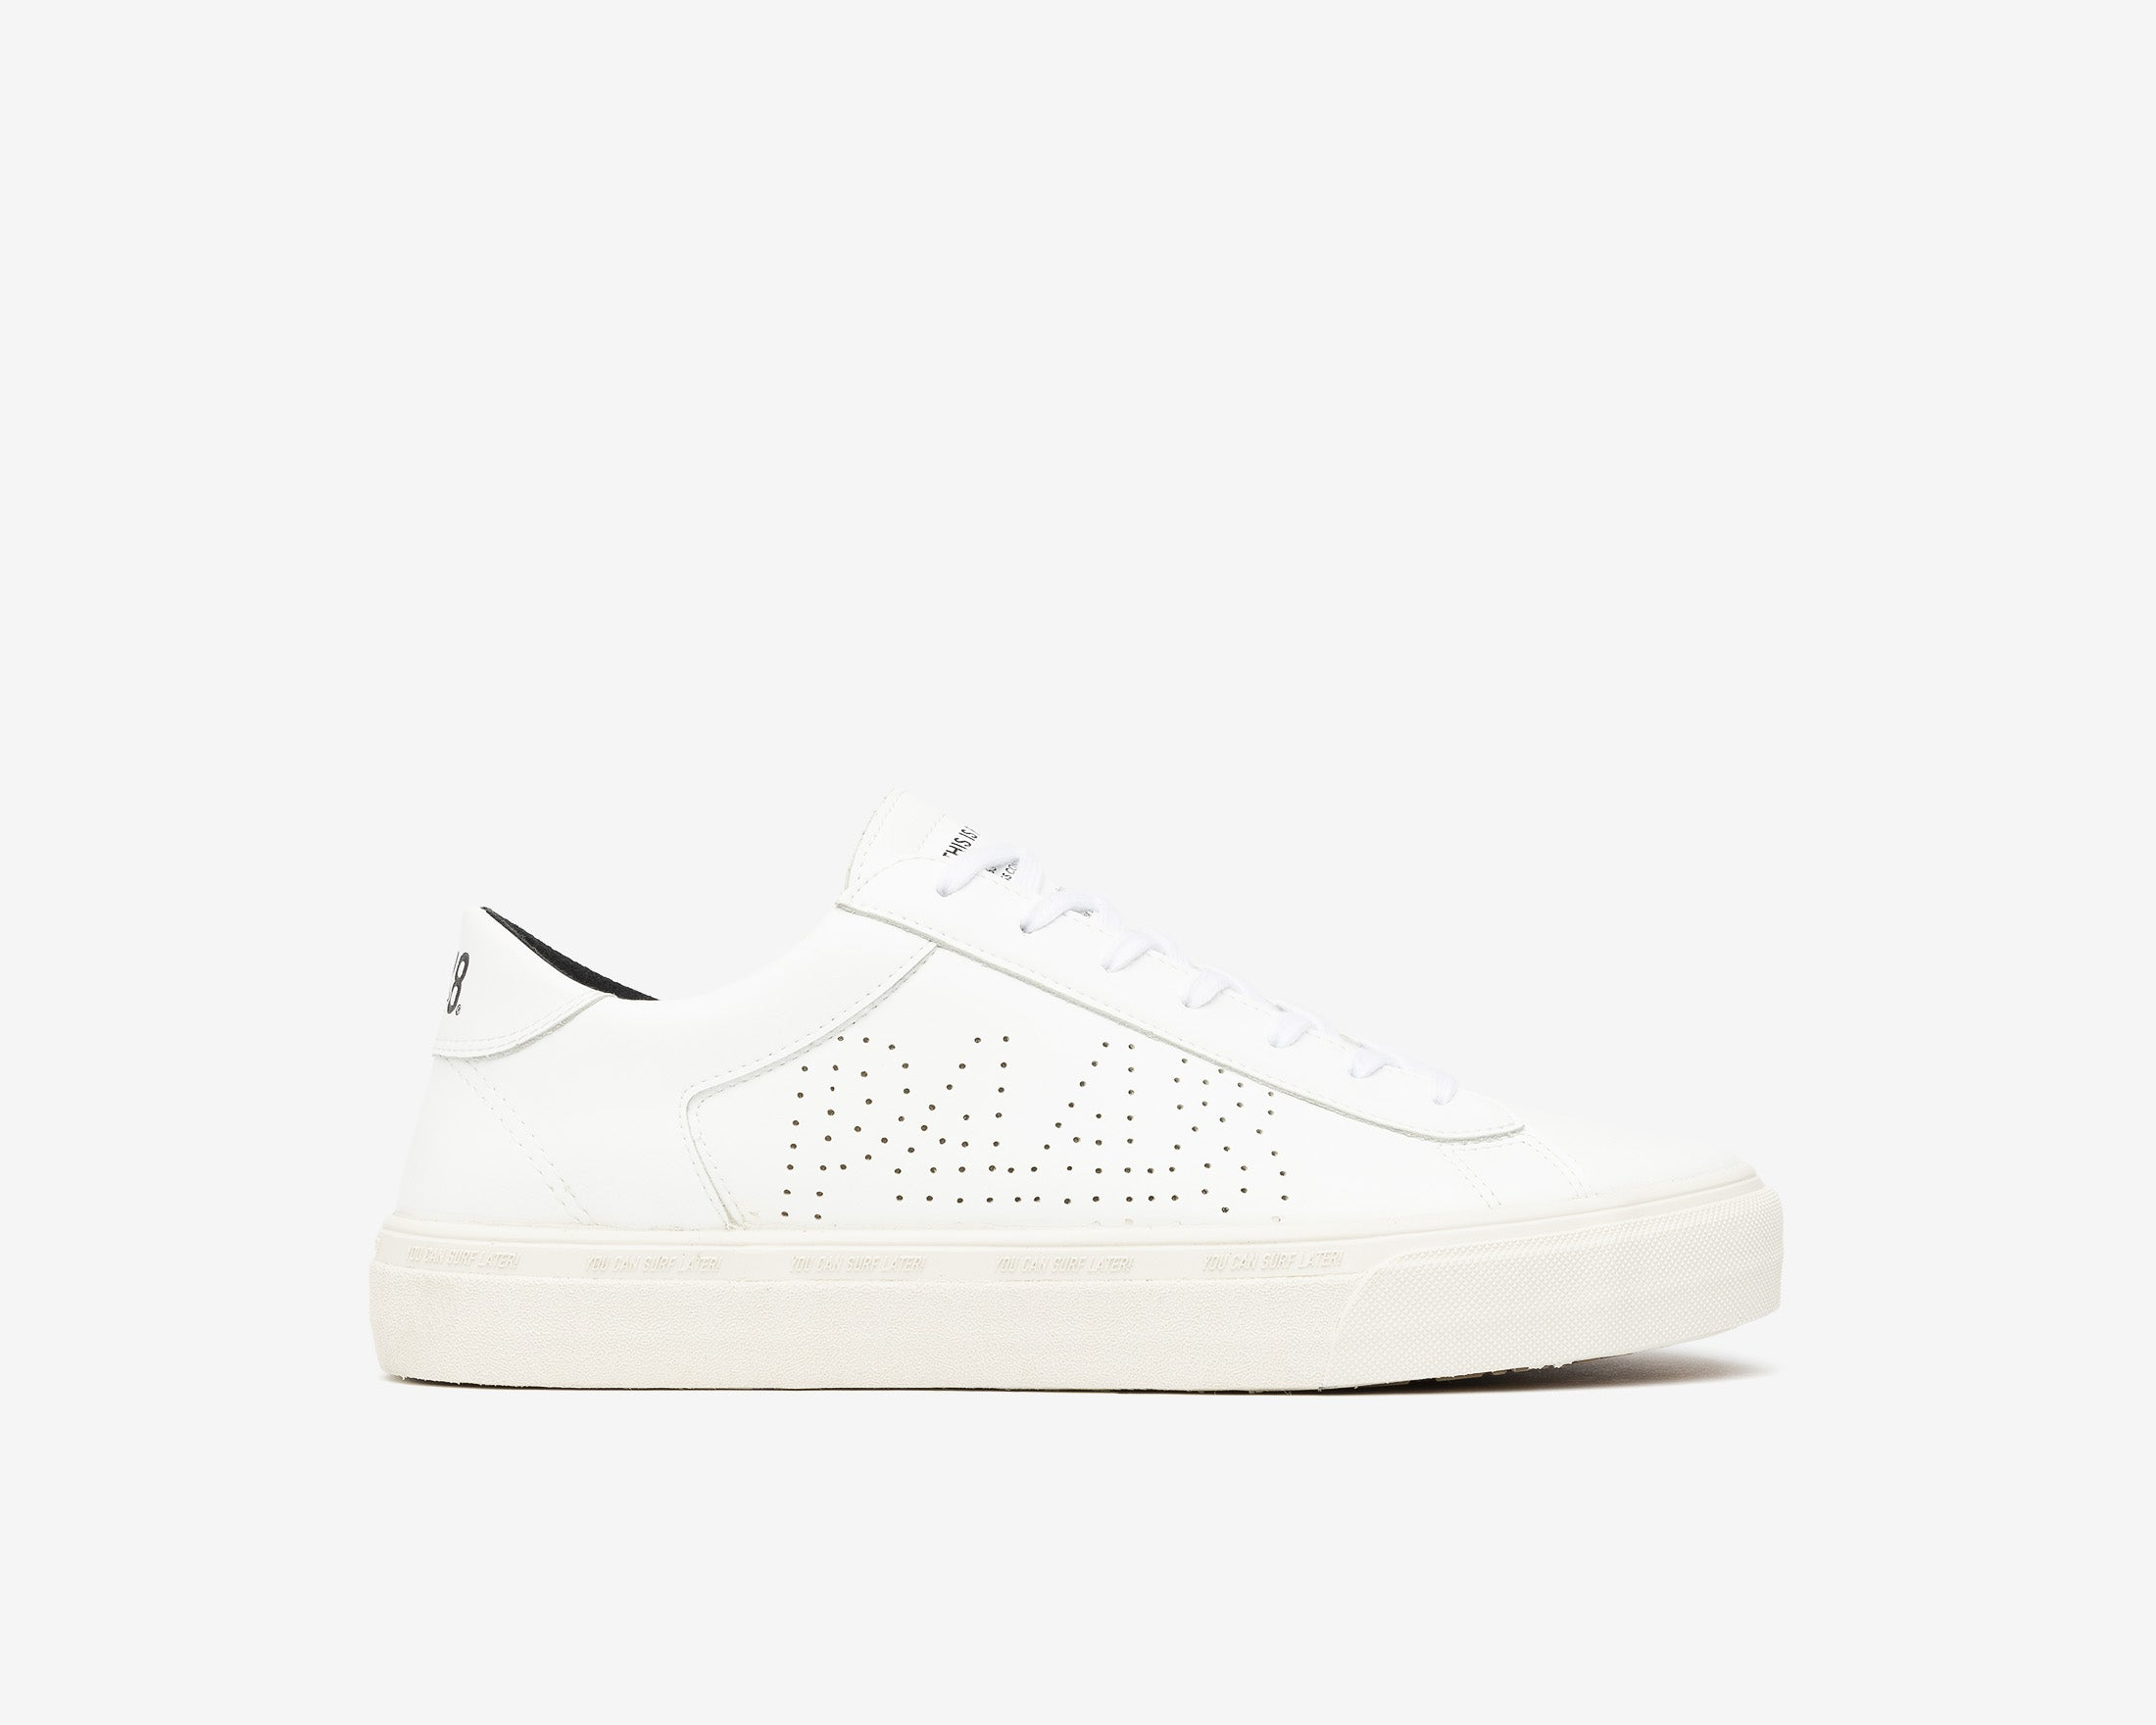 Y.C.S.L. Low-Top Volcanized Sneaker in WhiteR - Profille